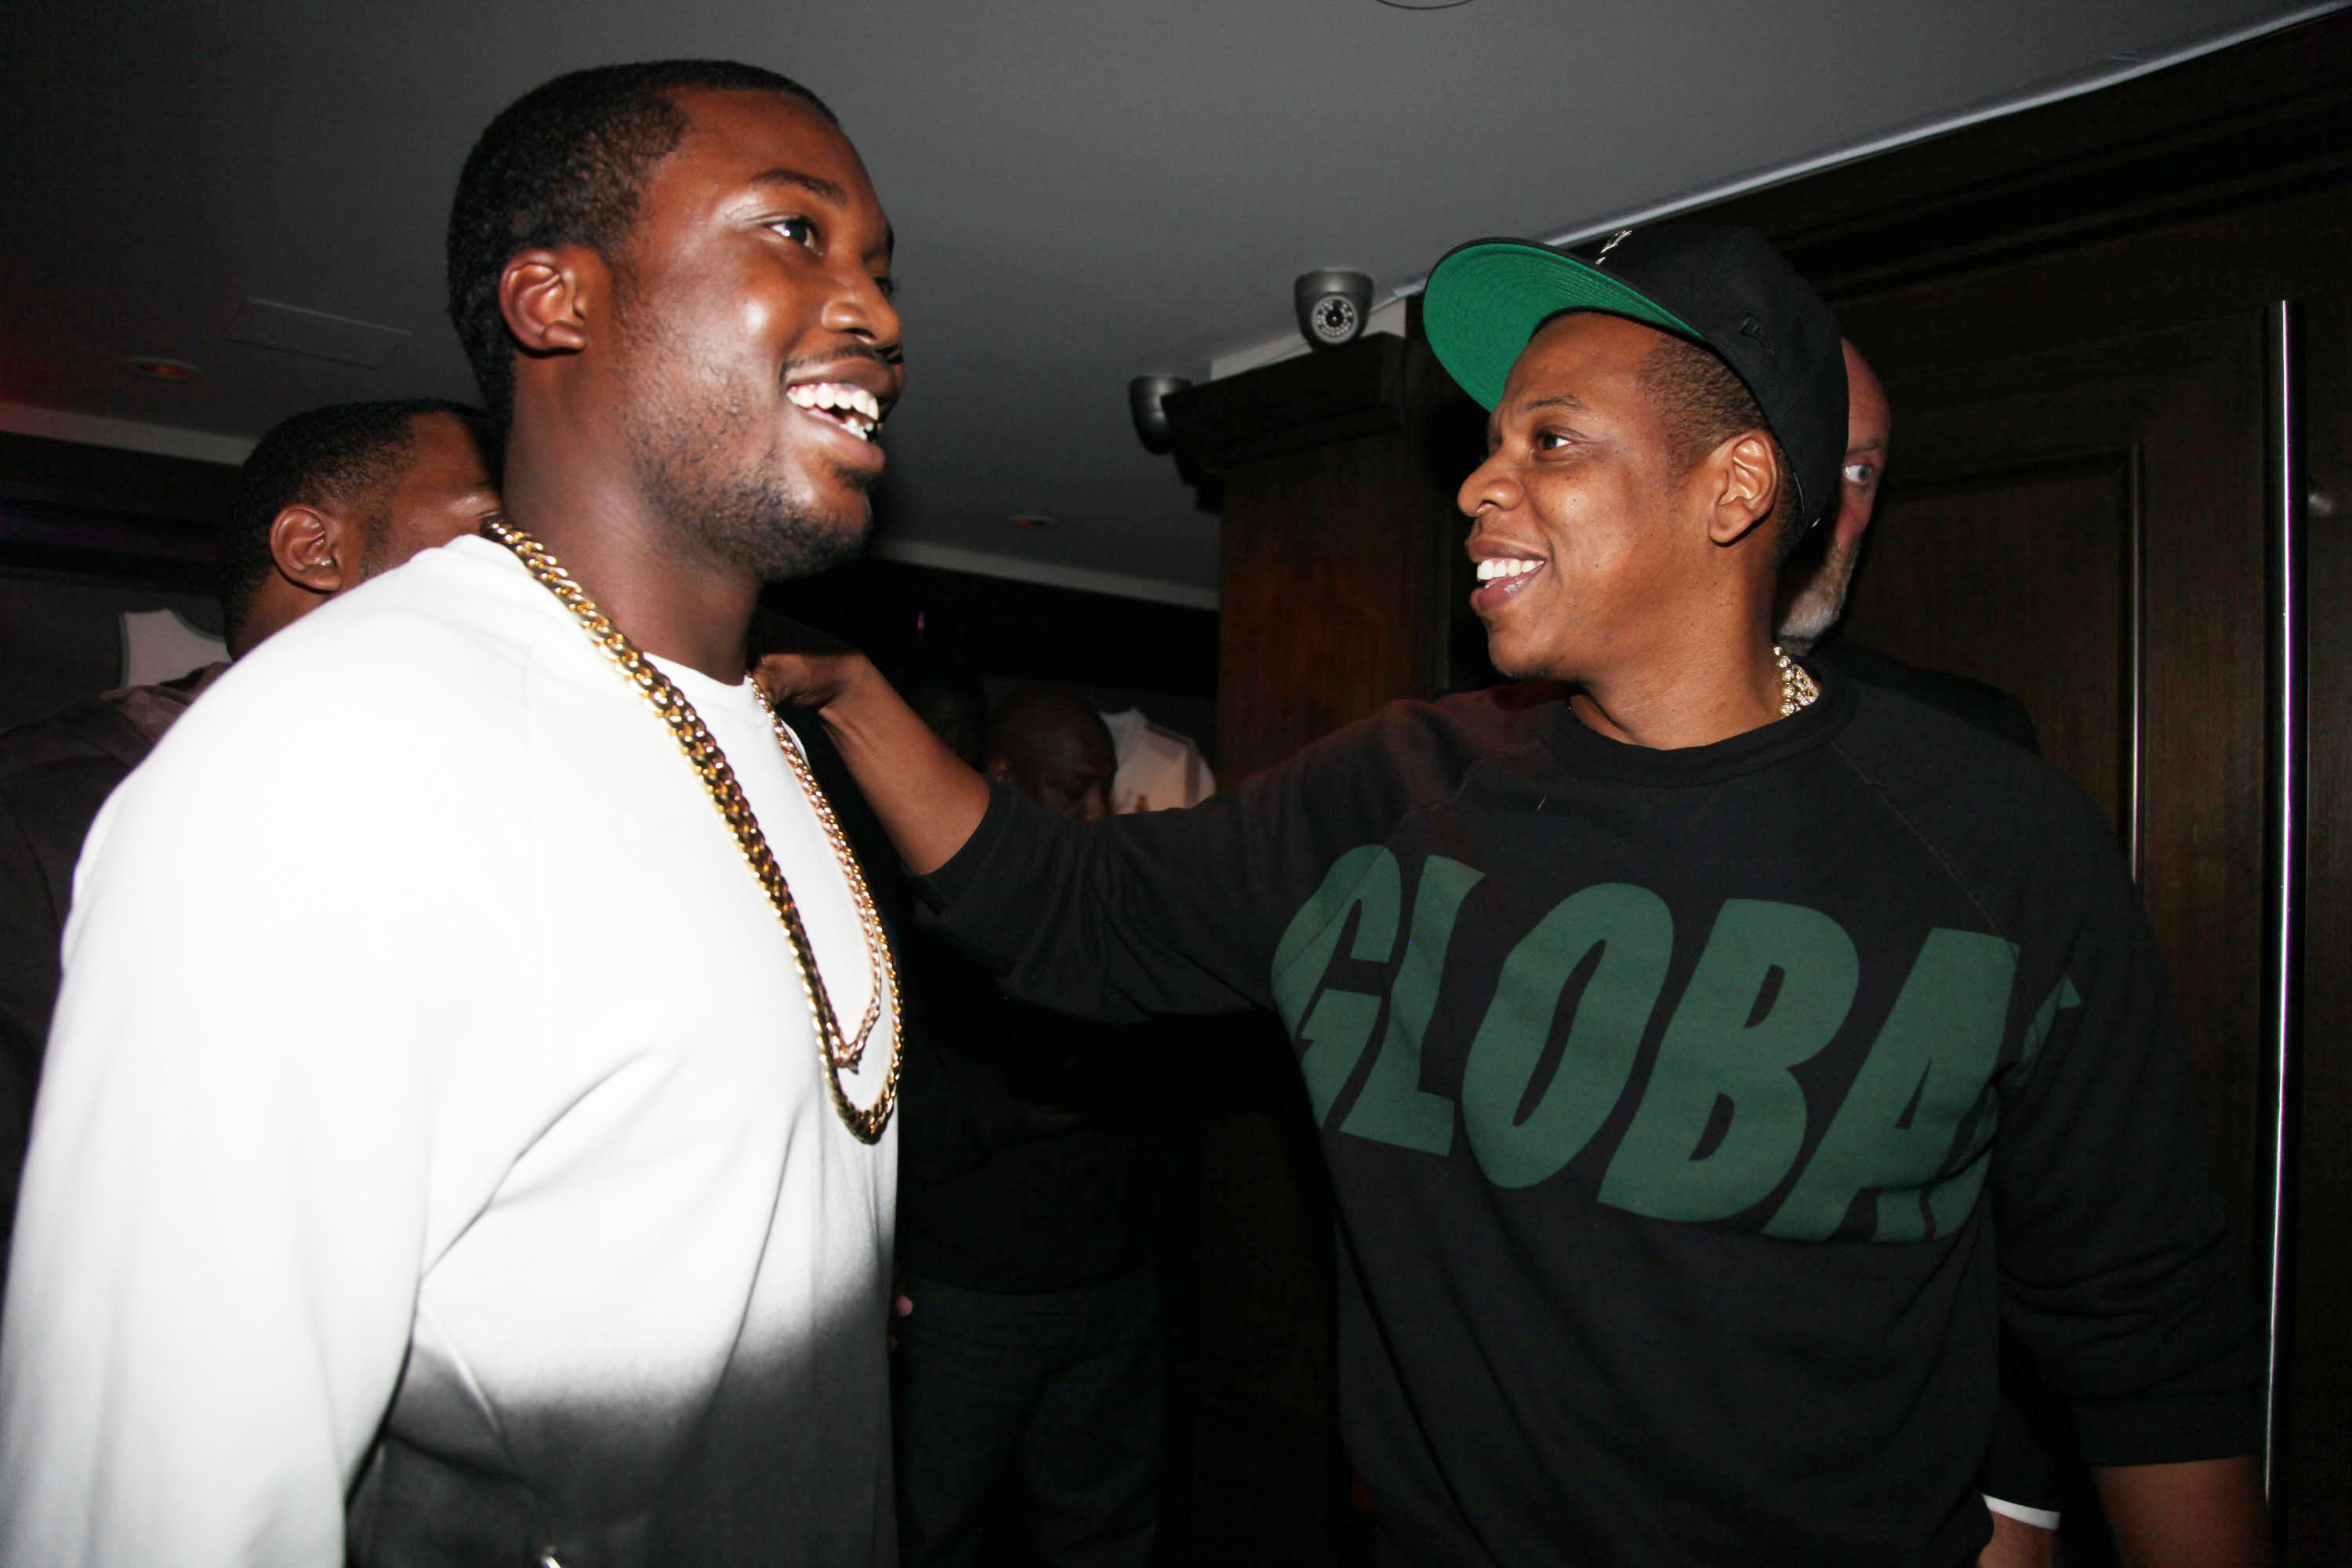 JAY Z Hosts The Premiere Of NBA 2K13 With Cover Athletes And NBA Superstars Kevin Durant And Derrick Rose - Inside